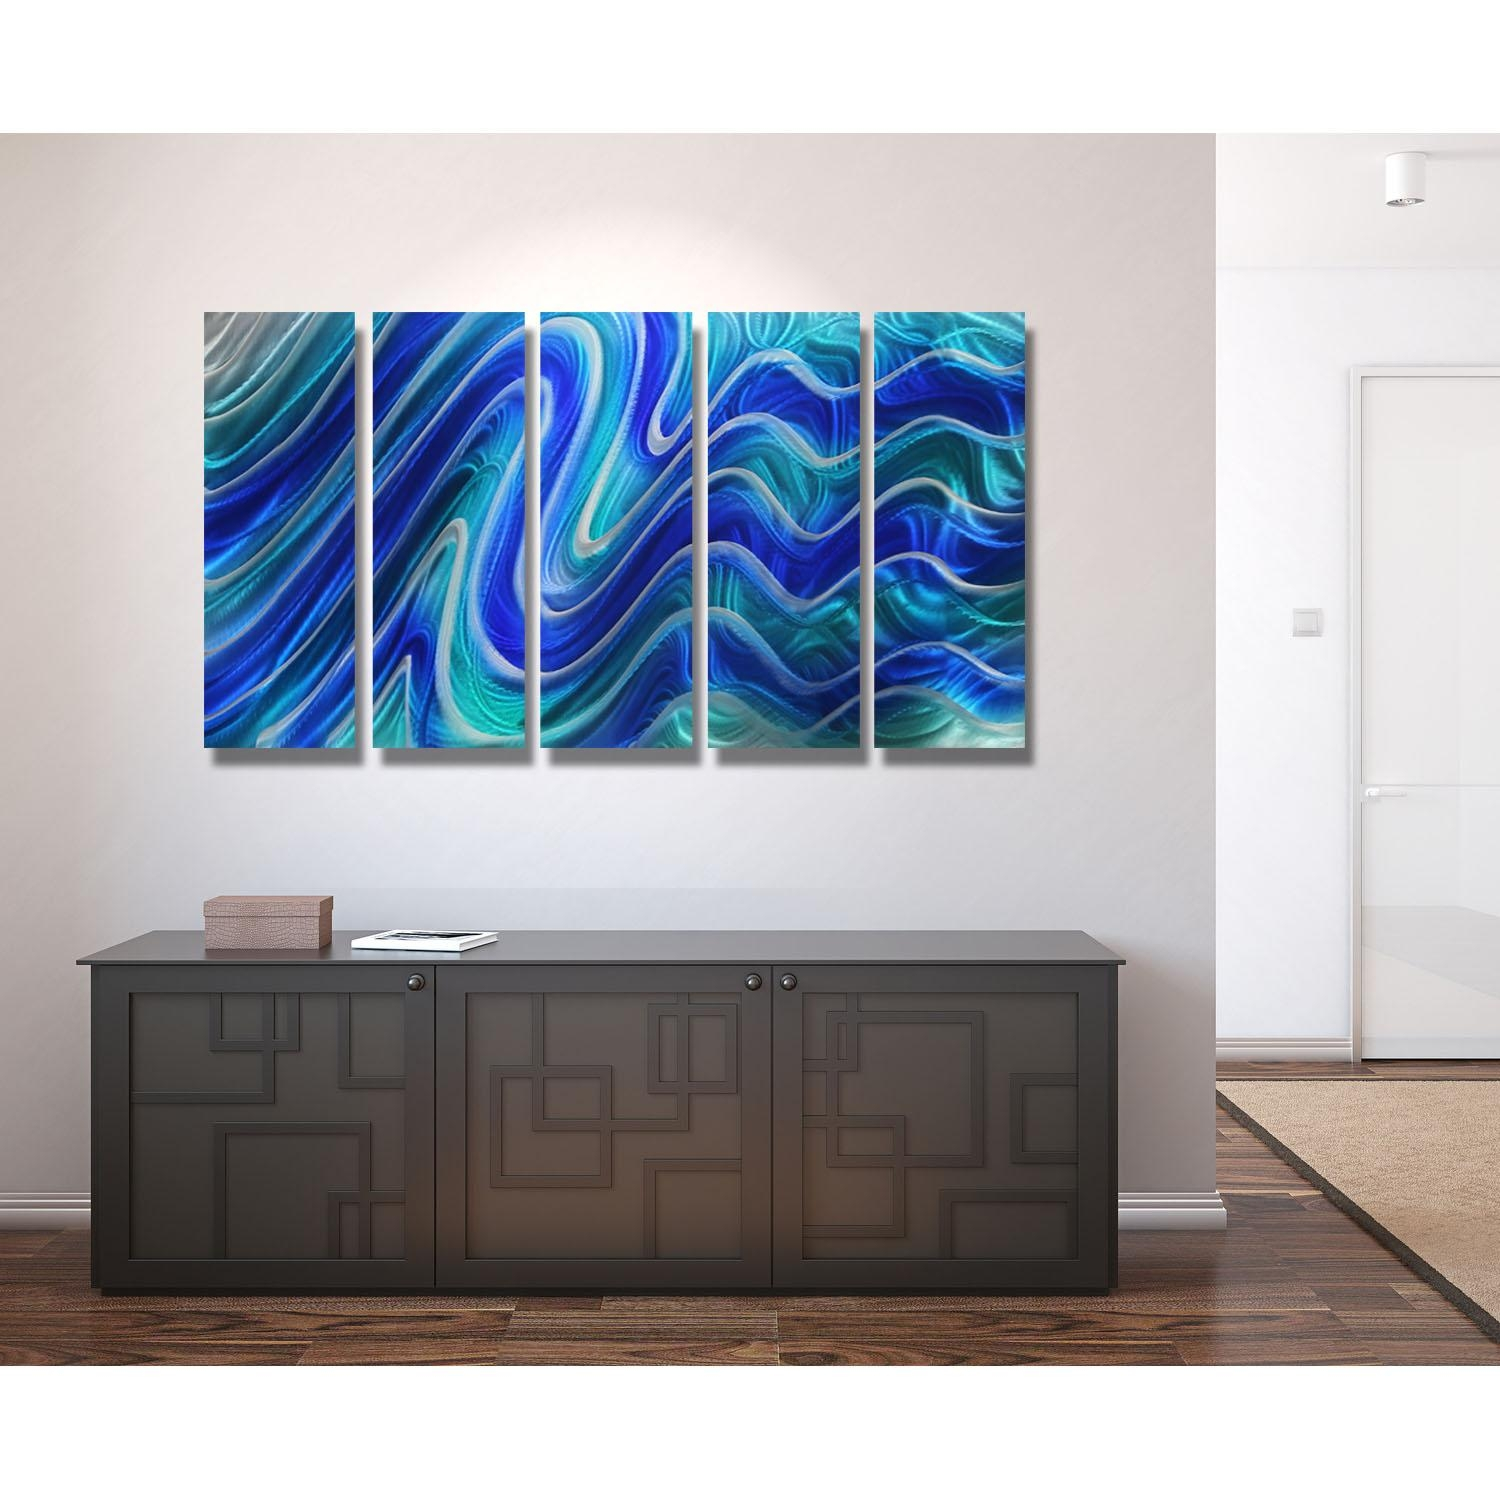 Paradise Plunge – Blue, Teal And Silver Metal Wall Art – 5 Panel Inside Turquoise Metal Wall Art (Image 8 of 20)